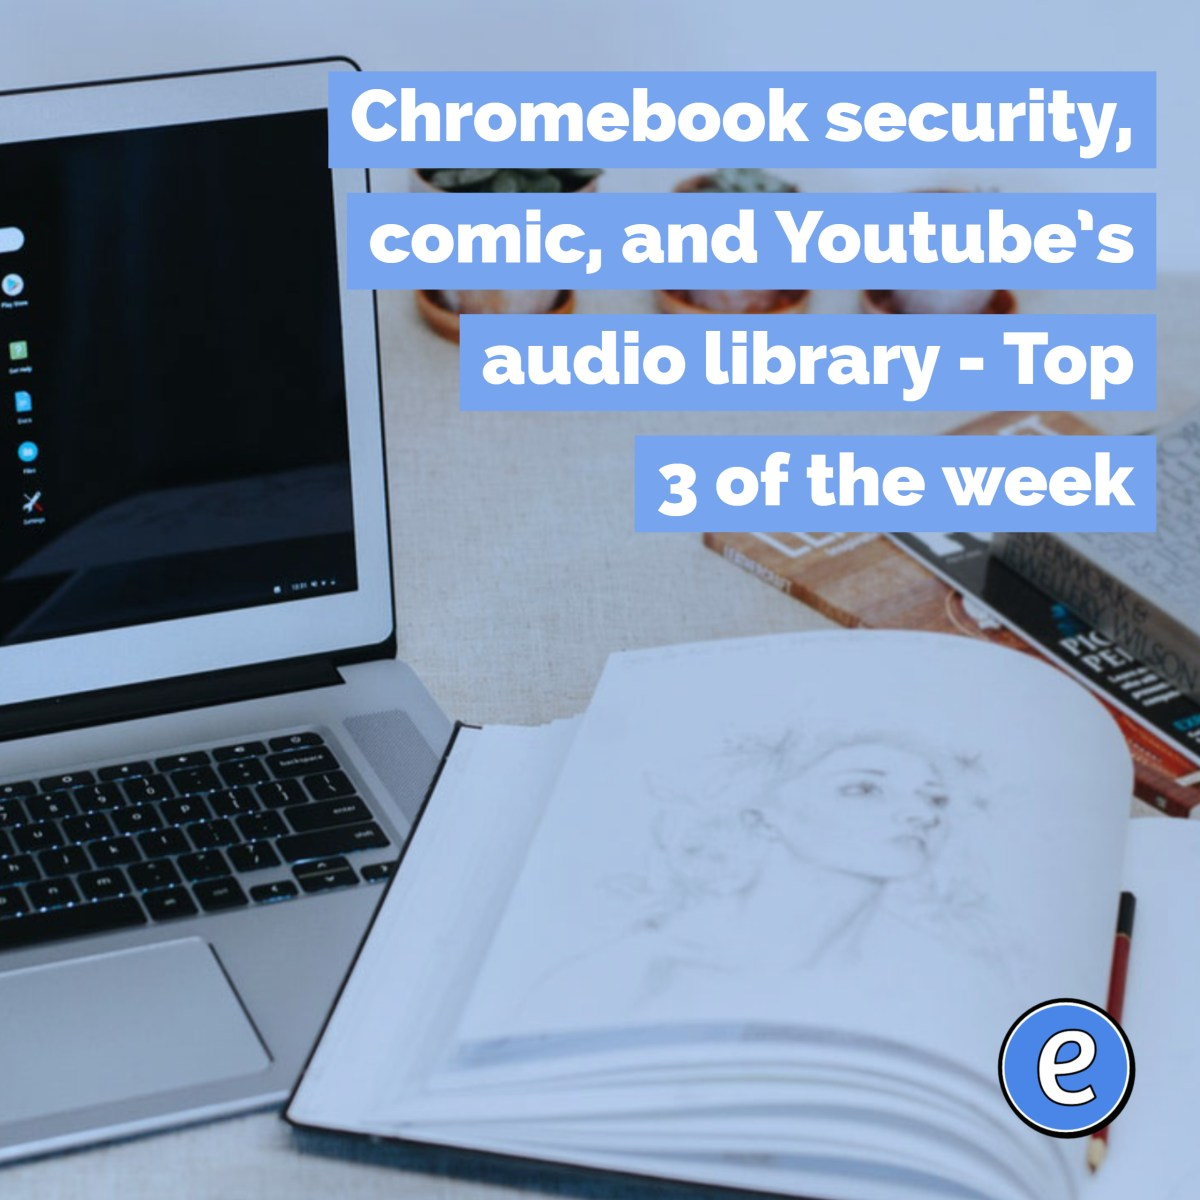 Chromebook security, comic, and Youtube's audio library - Top 3 of the week